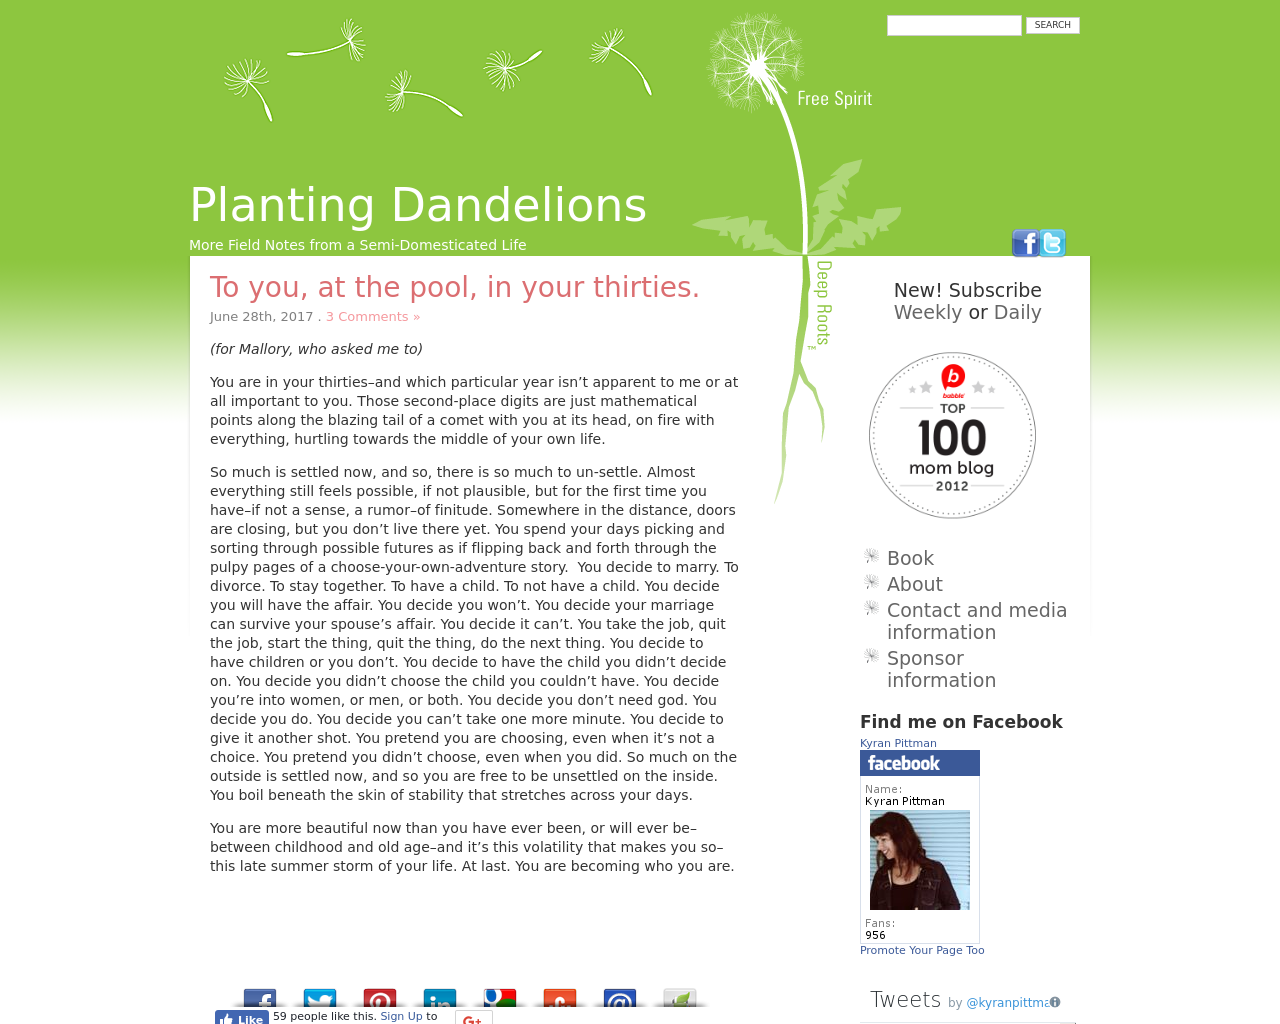 Planting-Dandelions-Advertising-Reviews-Pricing